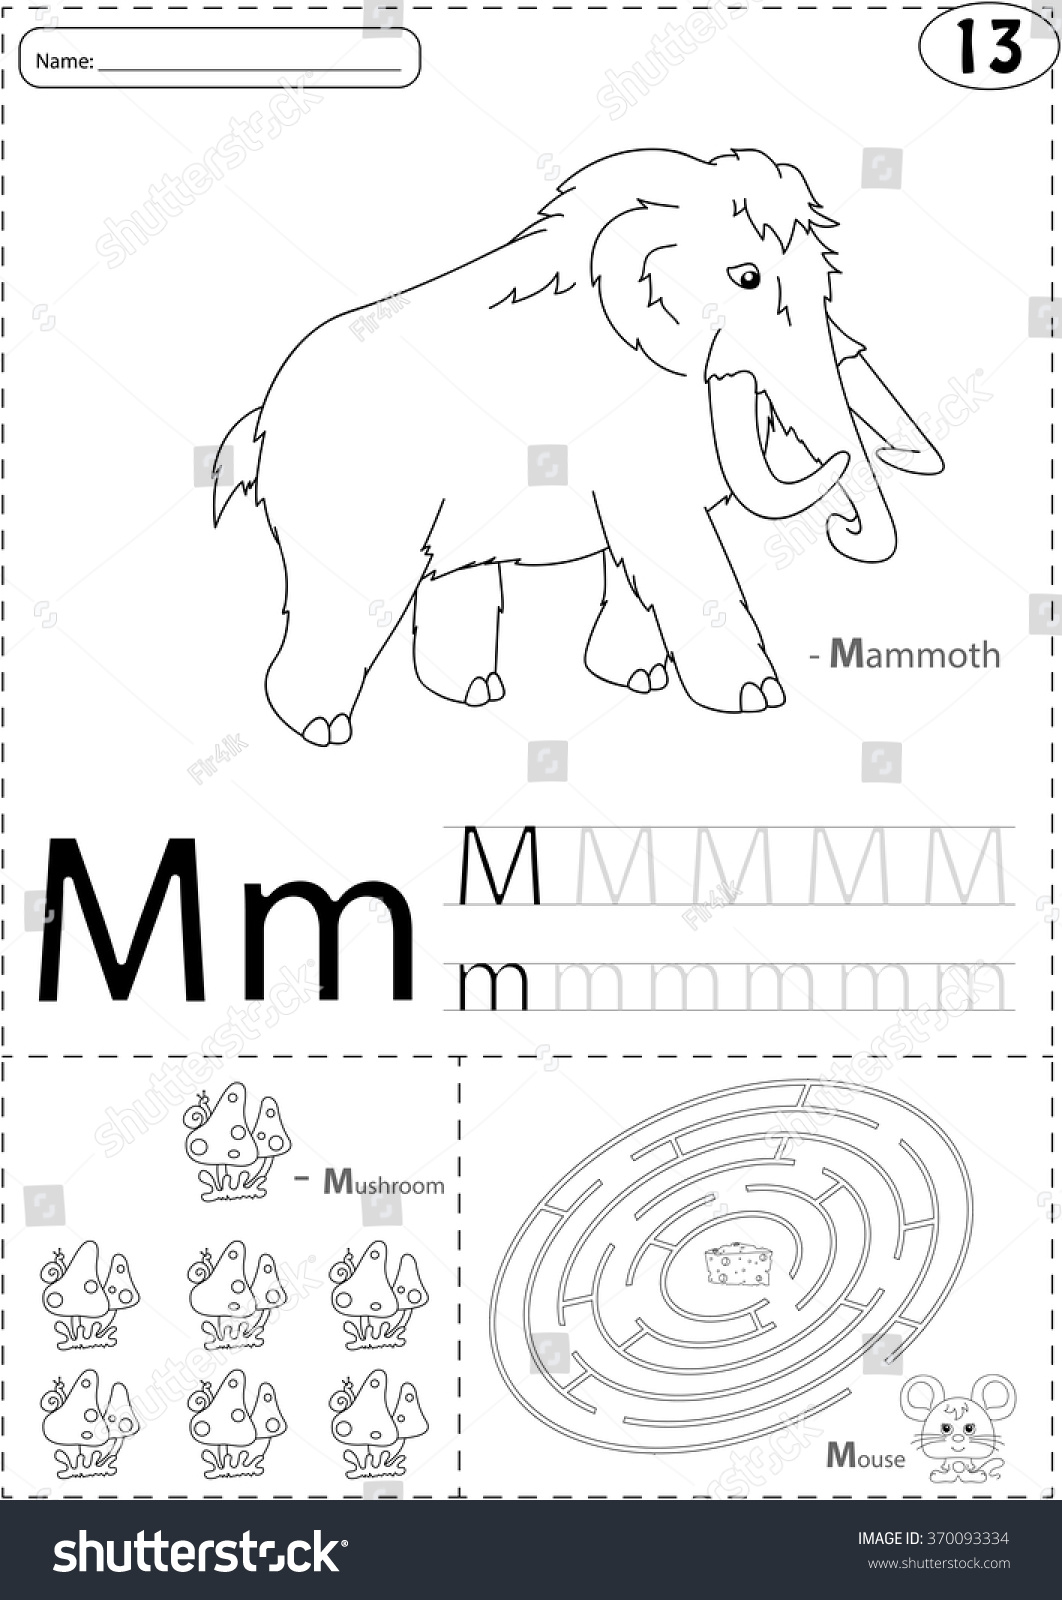 Cartoon Mammoth Mushroom And Mouse Alphabet Tracing Worksheet Writing A Z Coloring Book And